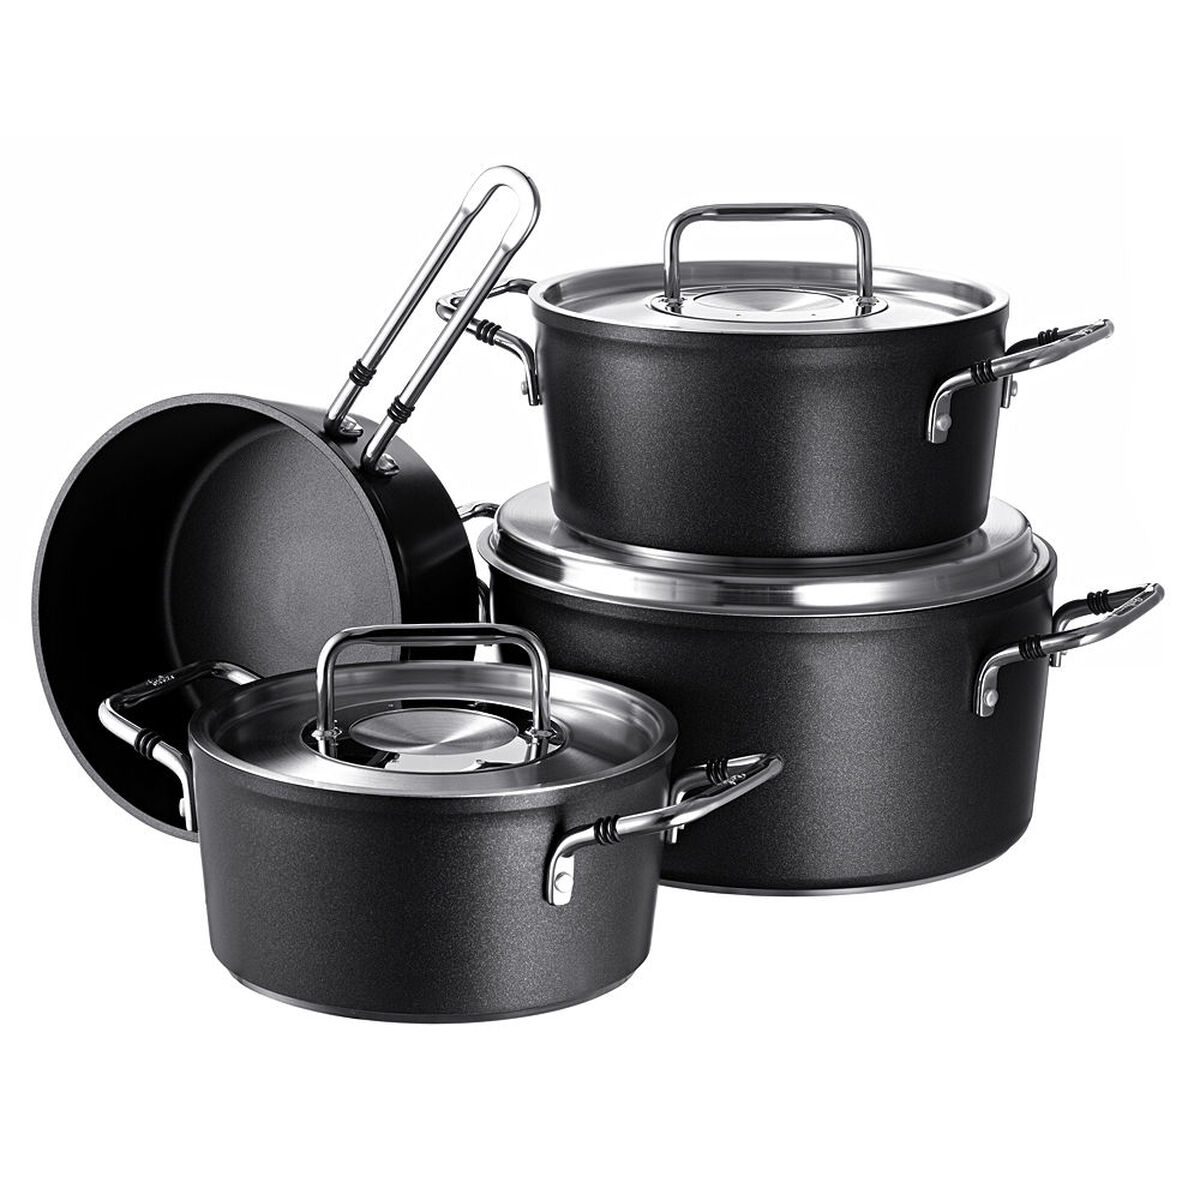 fissler topf set luno 4 teilig karstadt online shop. Black Bedroom Furniture Sets. Home Design Ideas